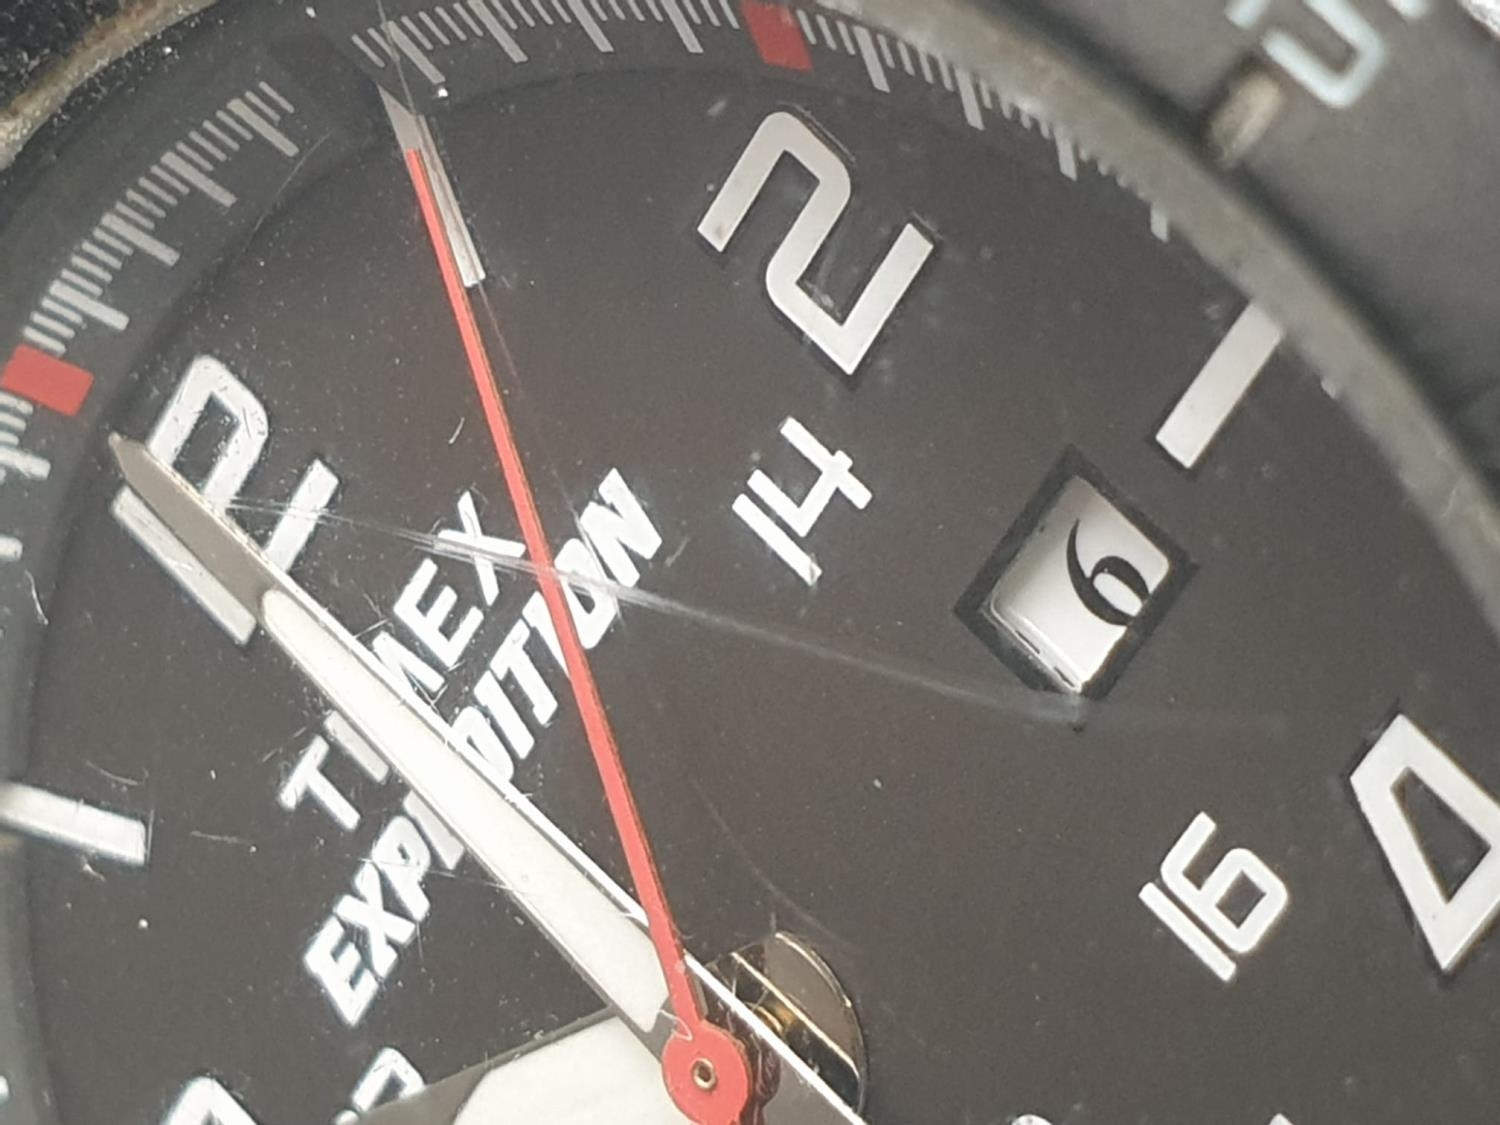 Timex Expedition Watch. Black rubber strap. Black dial. As found. - Image 4 of 9